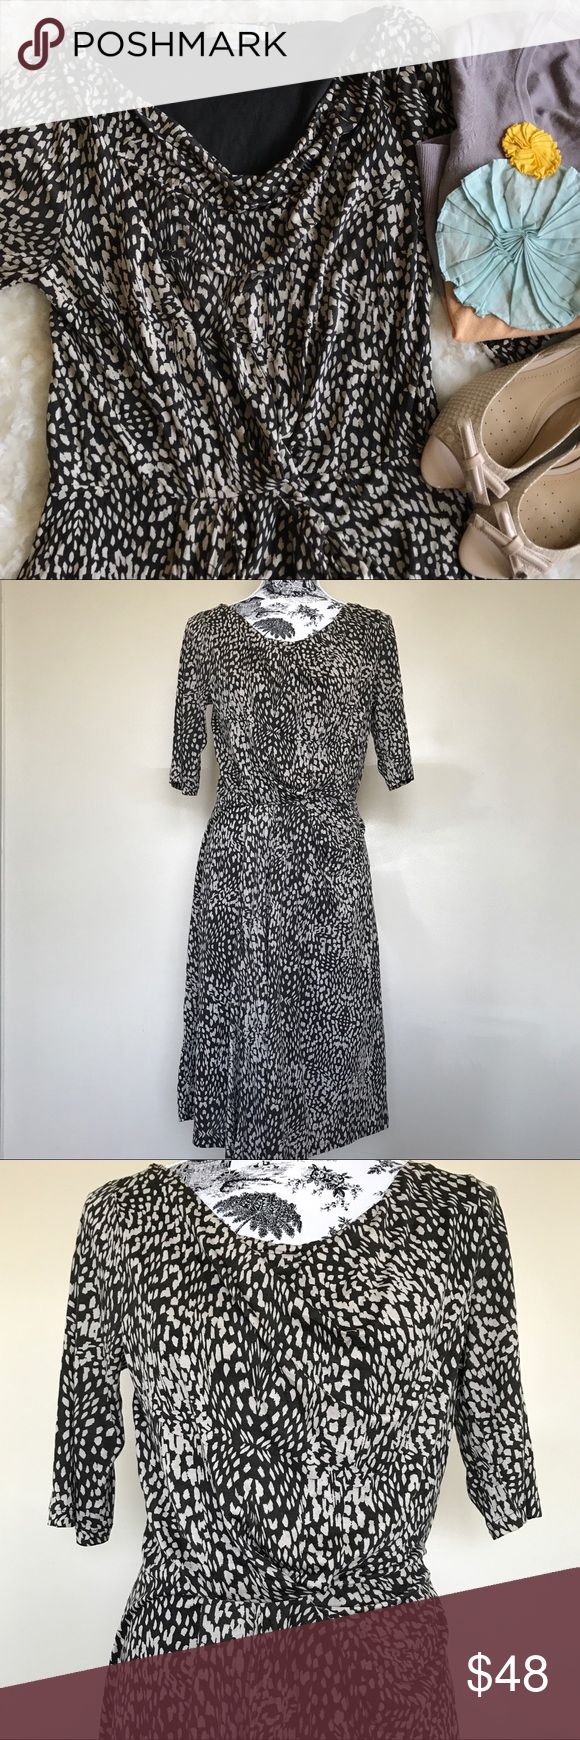 """Boden Leopard Print Ruched Dress Dress is in perfect condition! Soft Lyocell fabric dress eith full lining. Side zipper. Ruching at the waist creating draped neckline. Sleeves hit at the elbow. Bust measures about 16.5"""" and length at 41"""". 100% Tencel Lyocell. Boden Dresses Midi"""